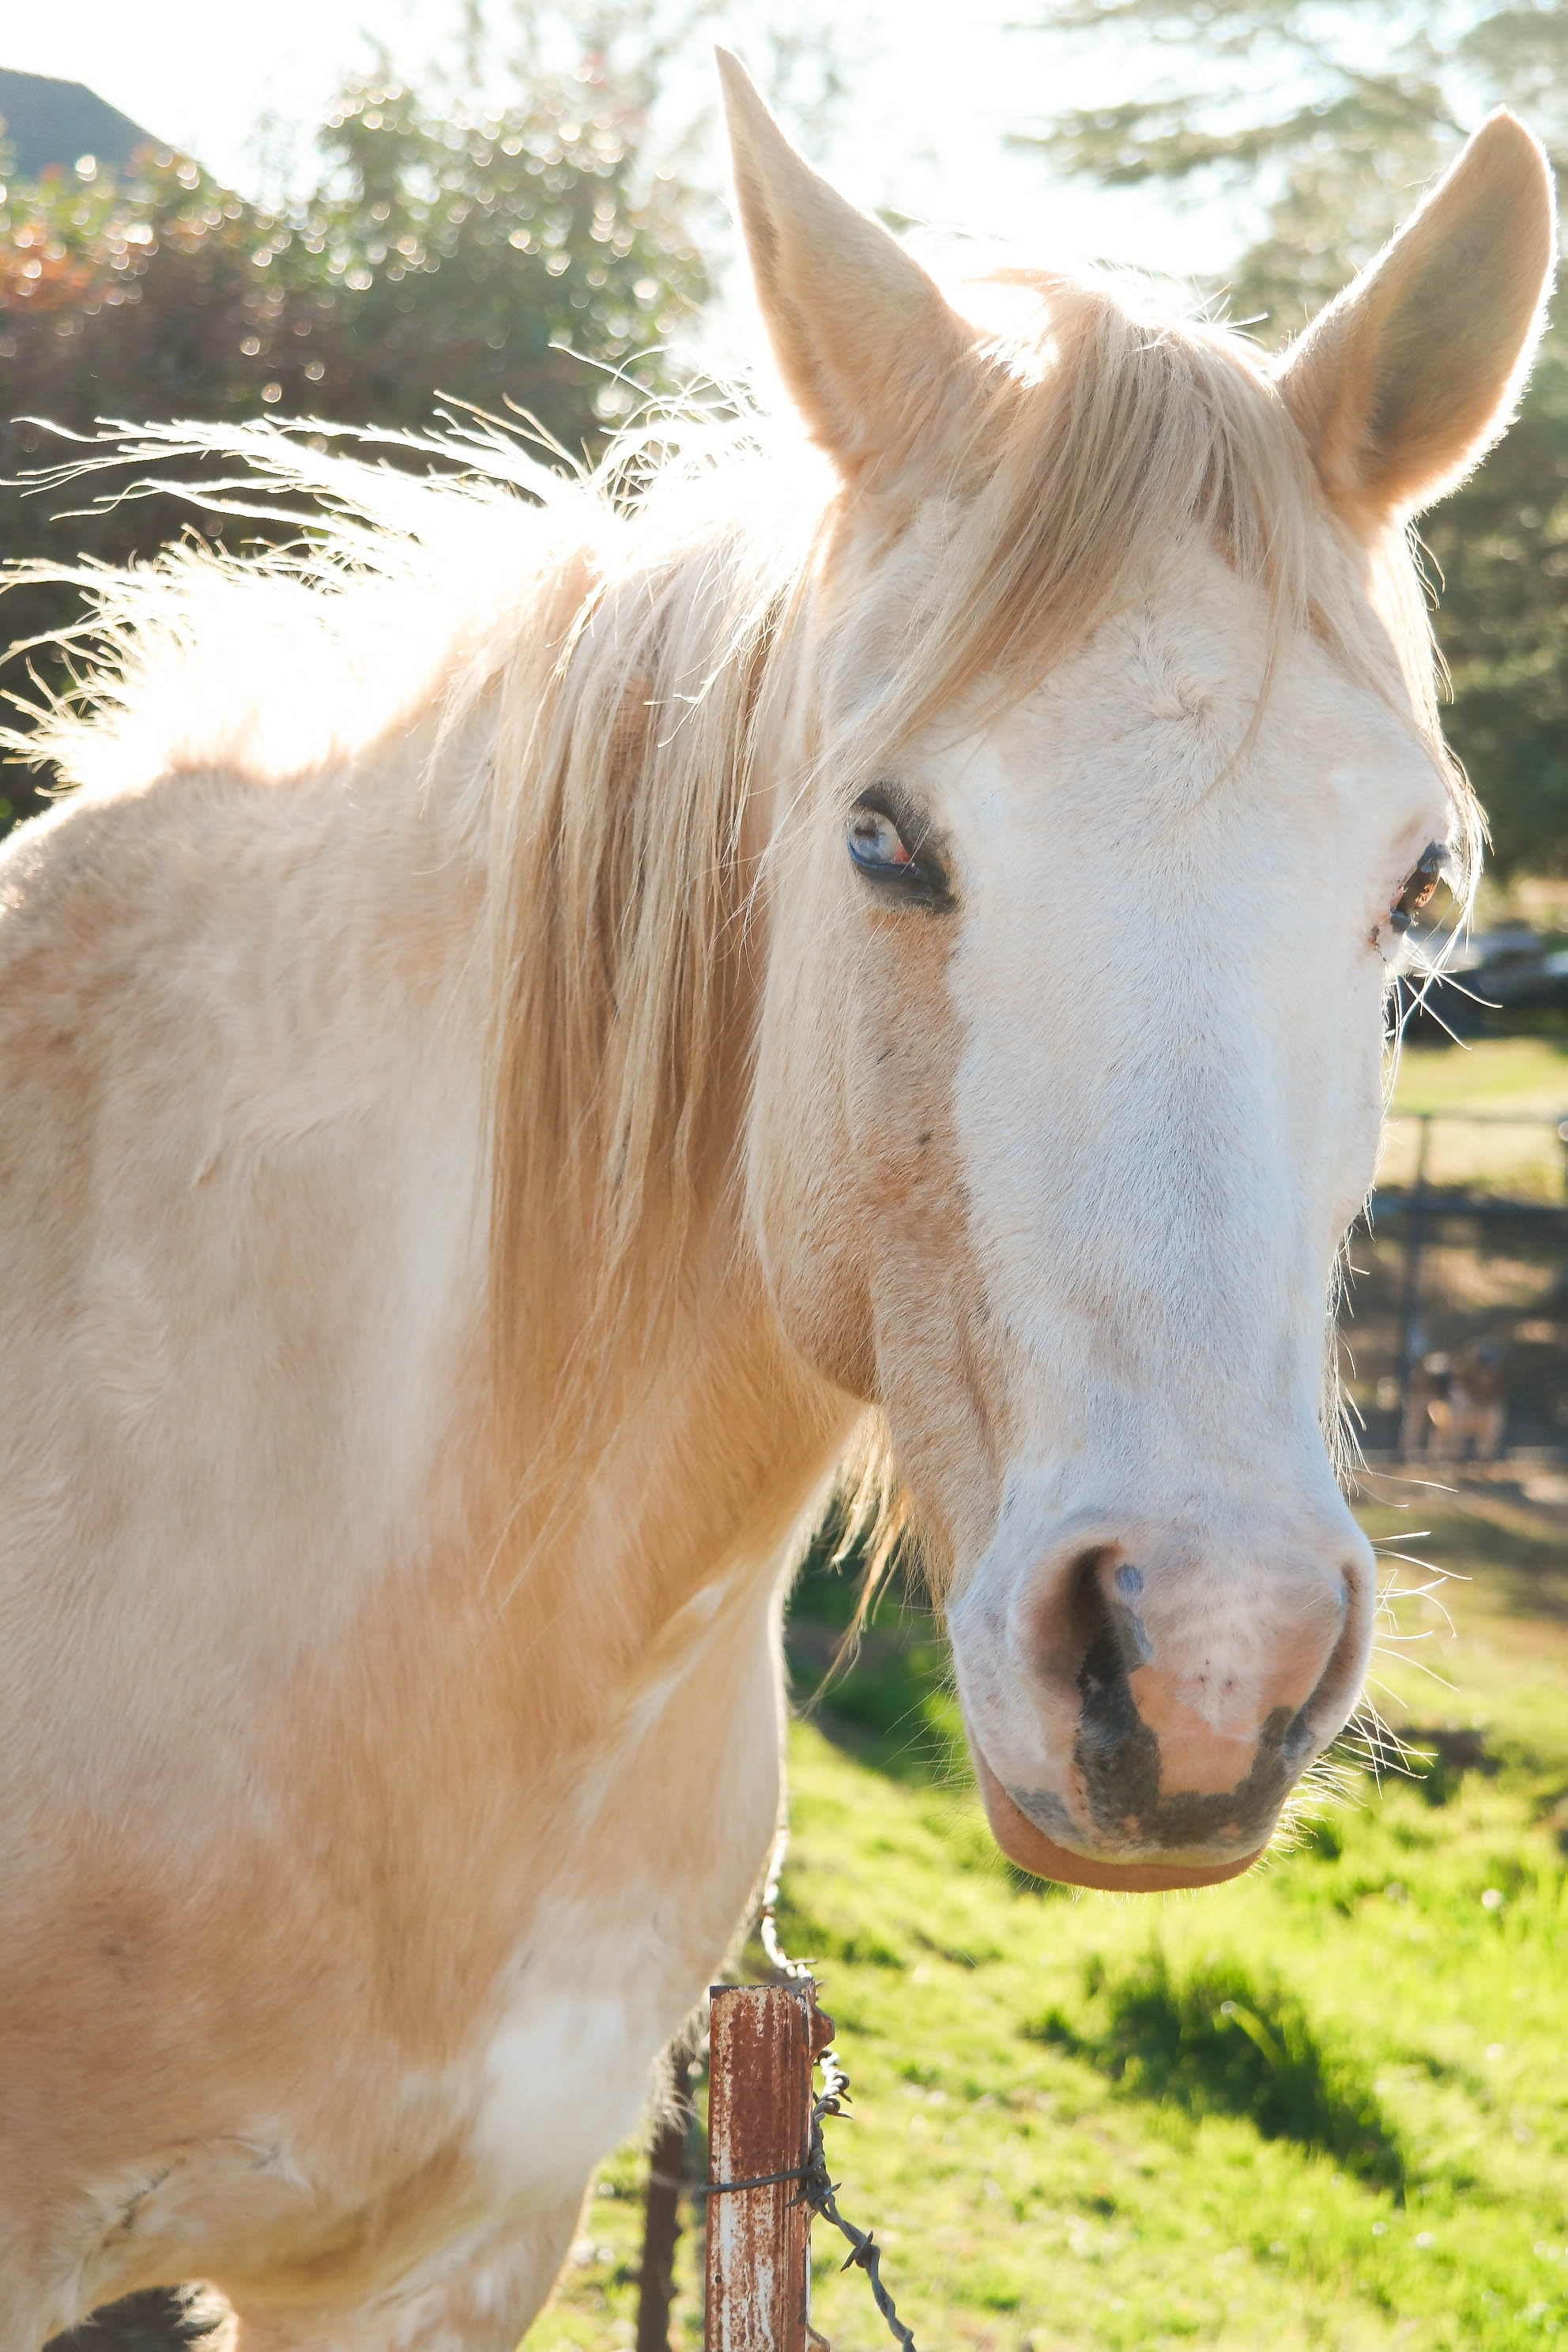 A palomino horse with white marking on its head on a sunny day